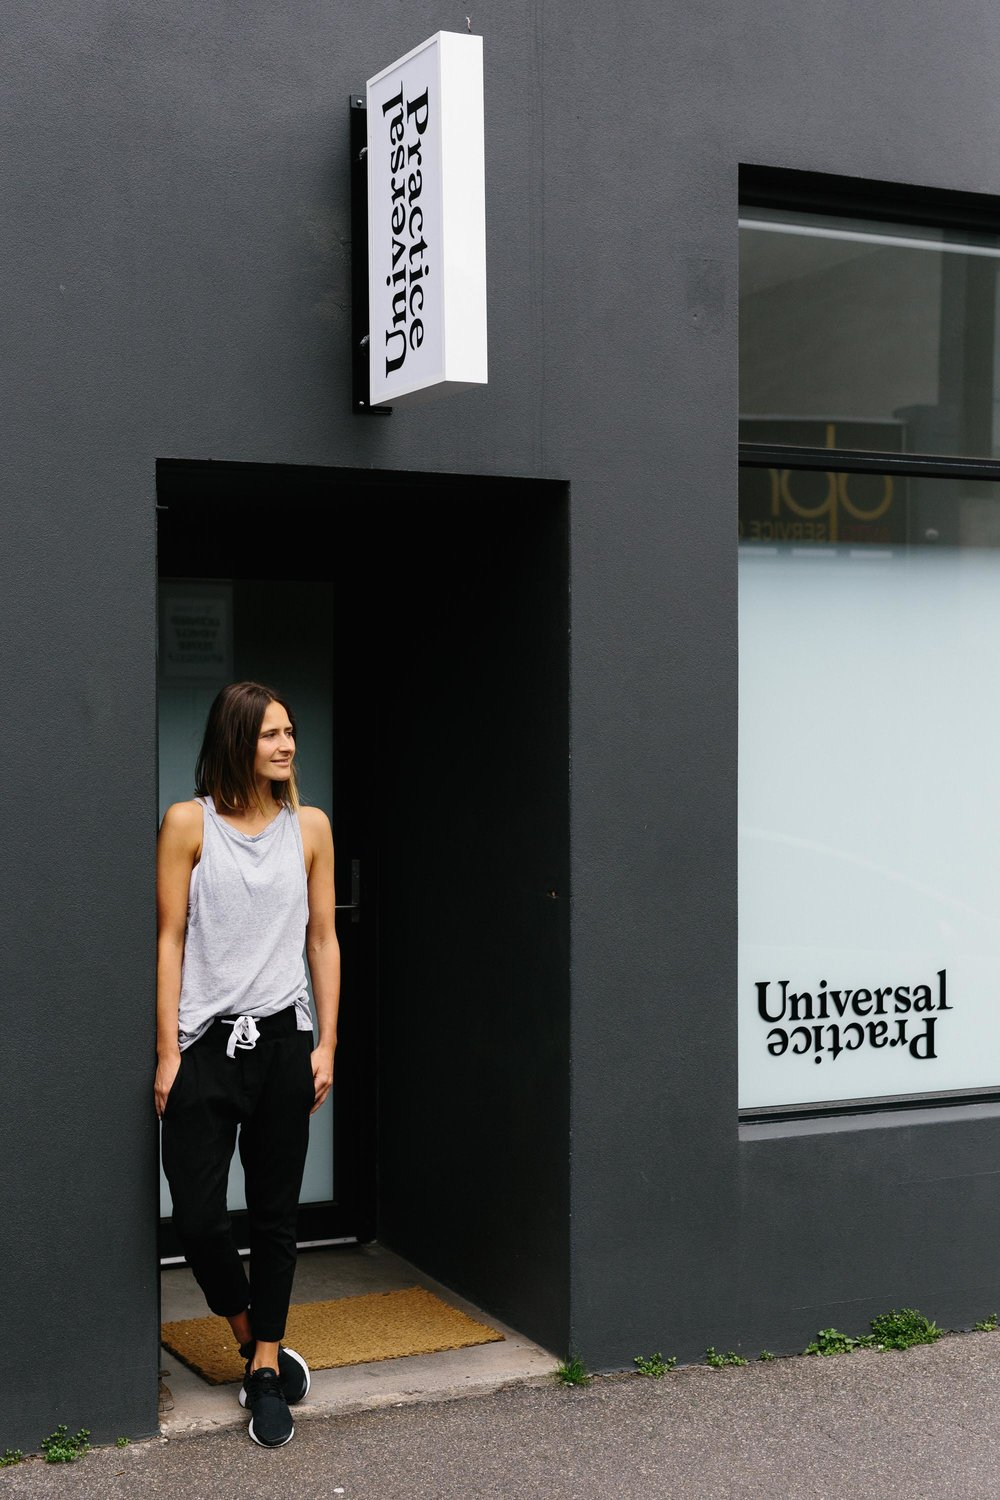 Marnie Hawson, Melbourne lifestyle photographer, for Universal Practice in Richmond